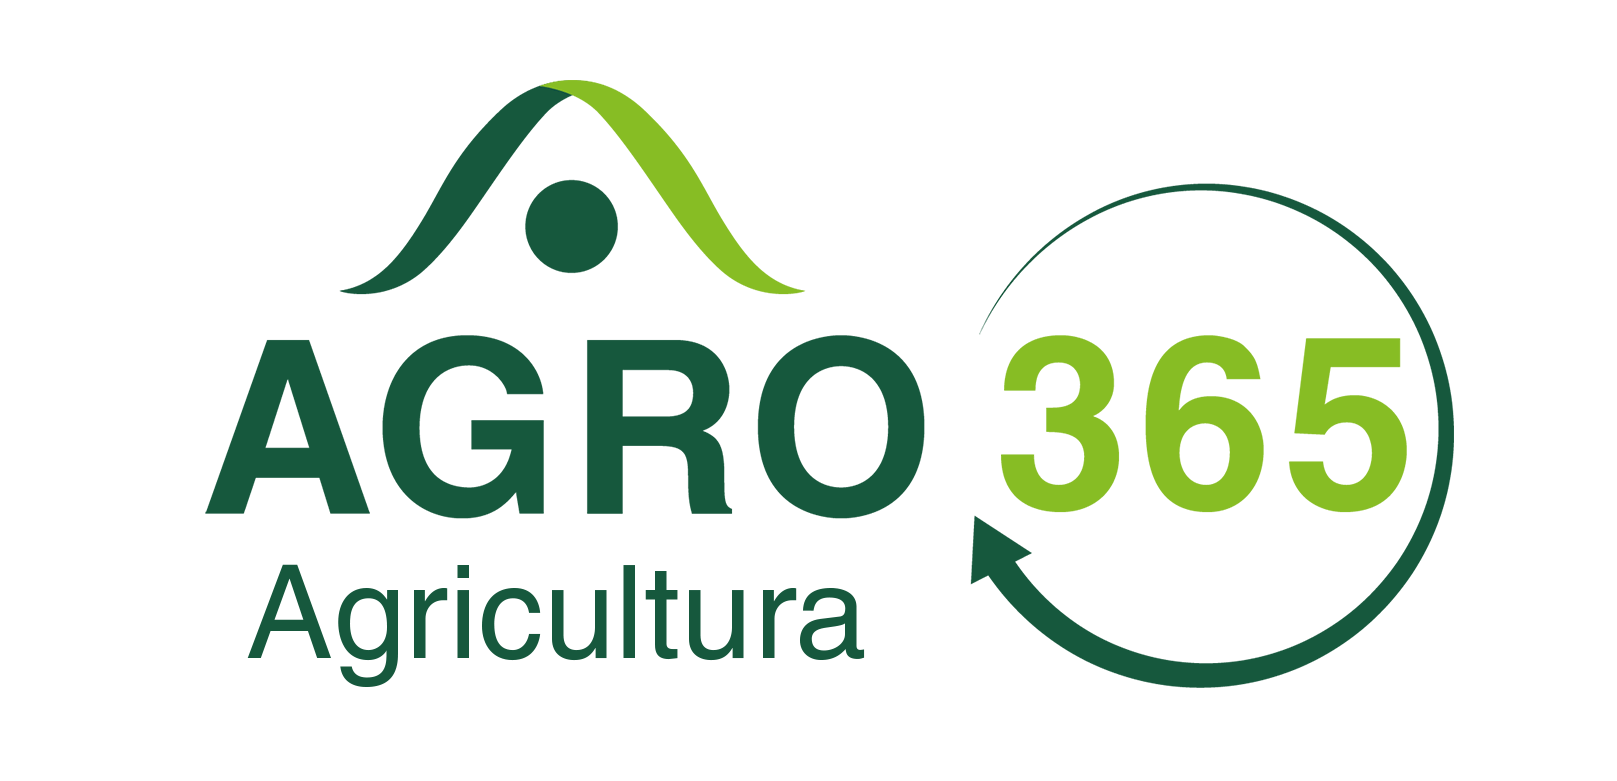 agricultura-vertical-1.png